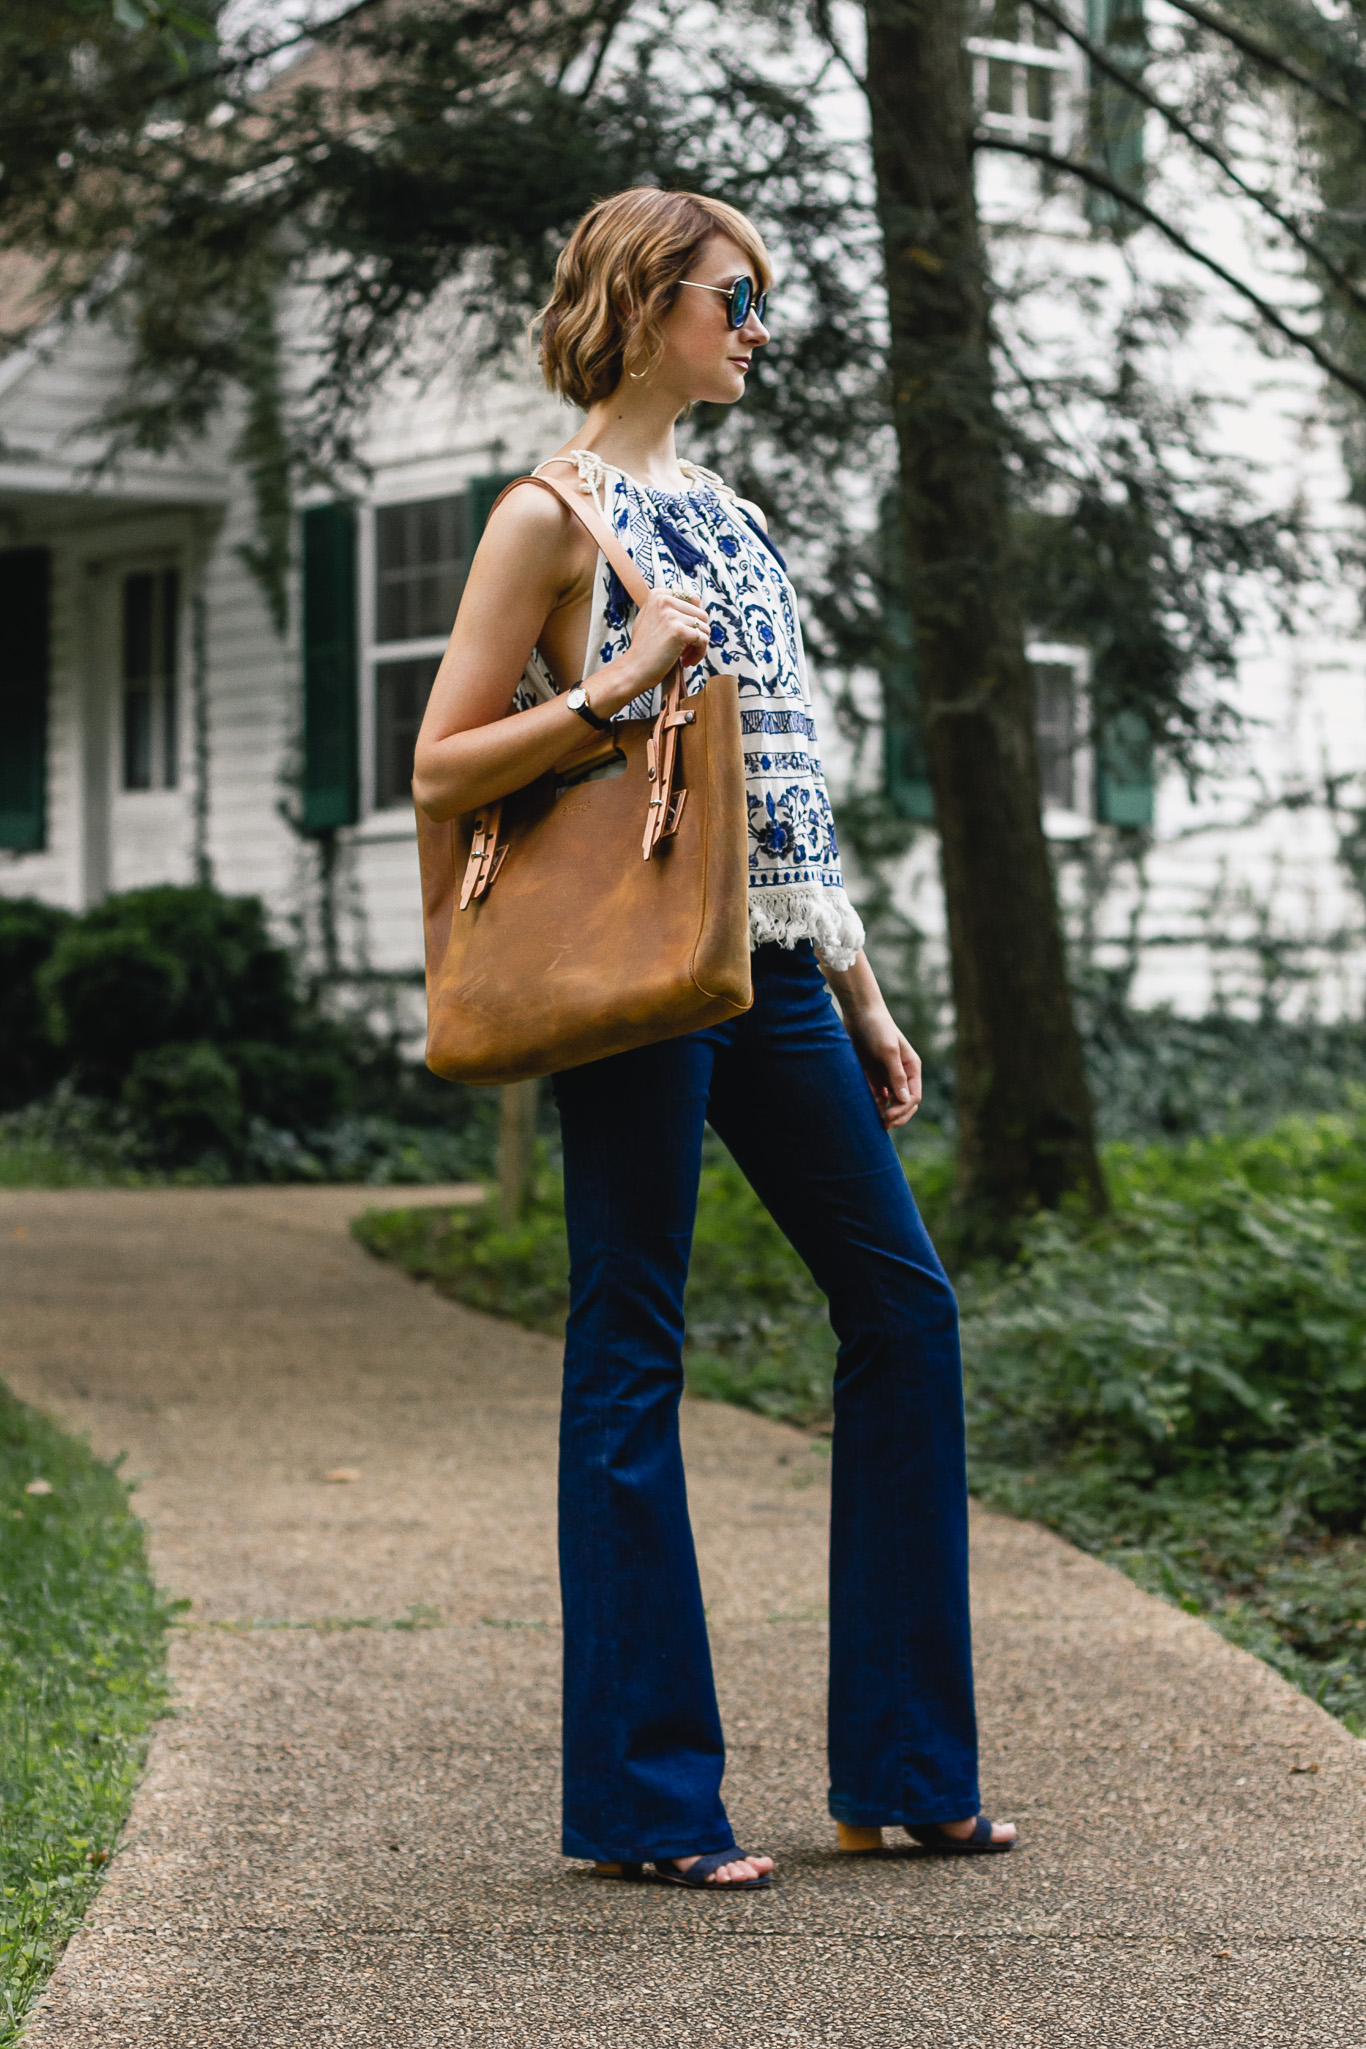 Mango top, J brand flare jeans, and Saddleback Leather bag